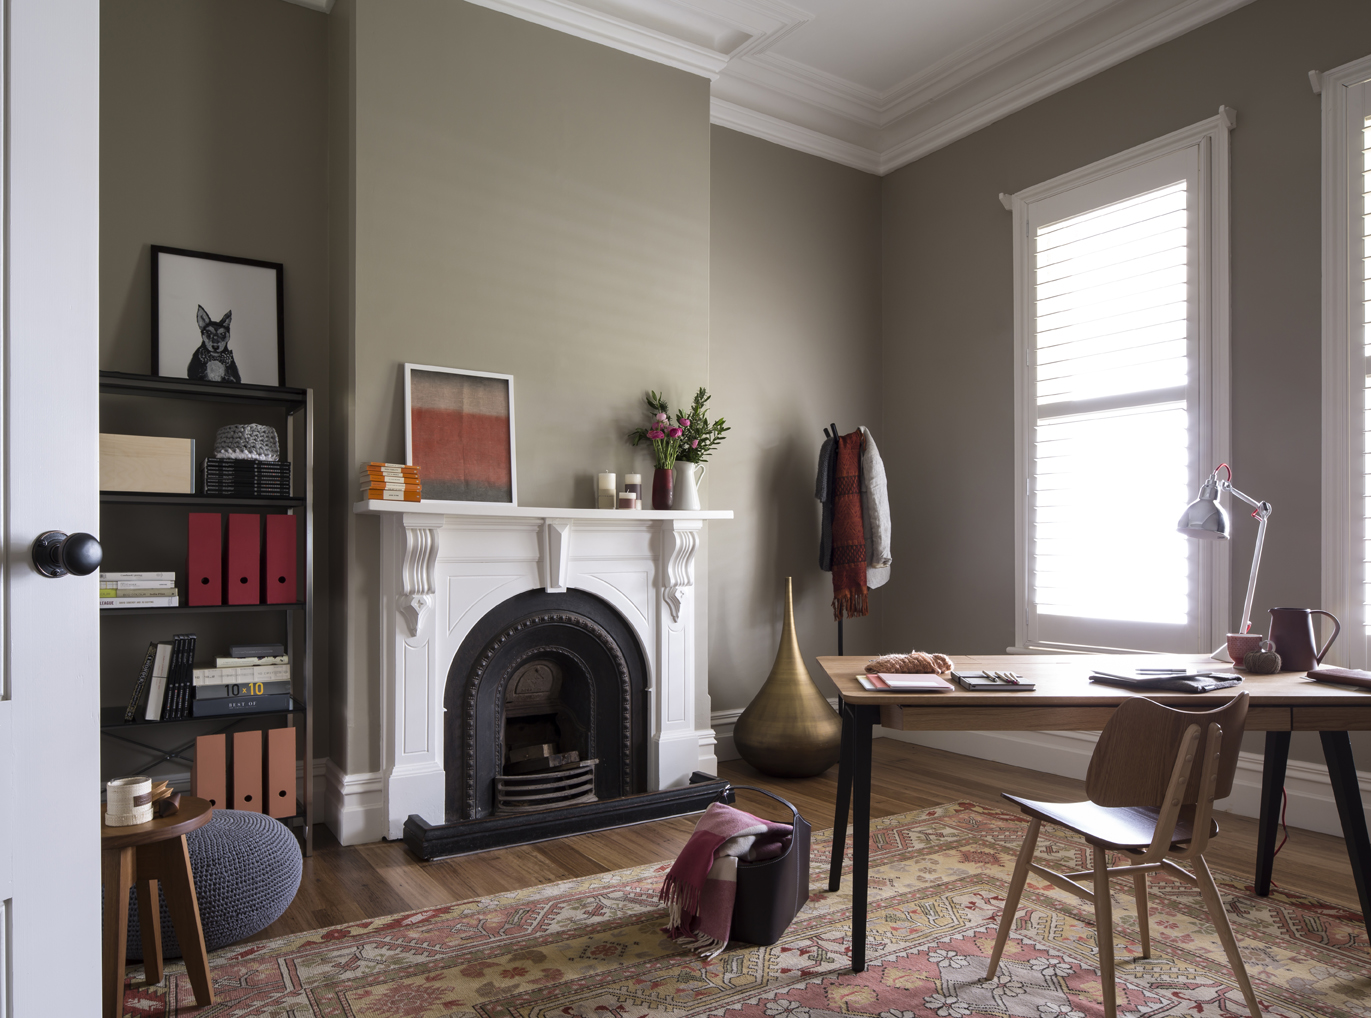 Dulux Predicts Design Trends For 2013 In Annual Colour